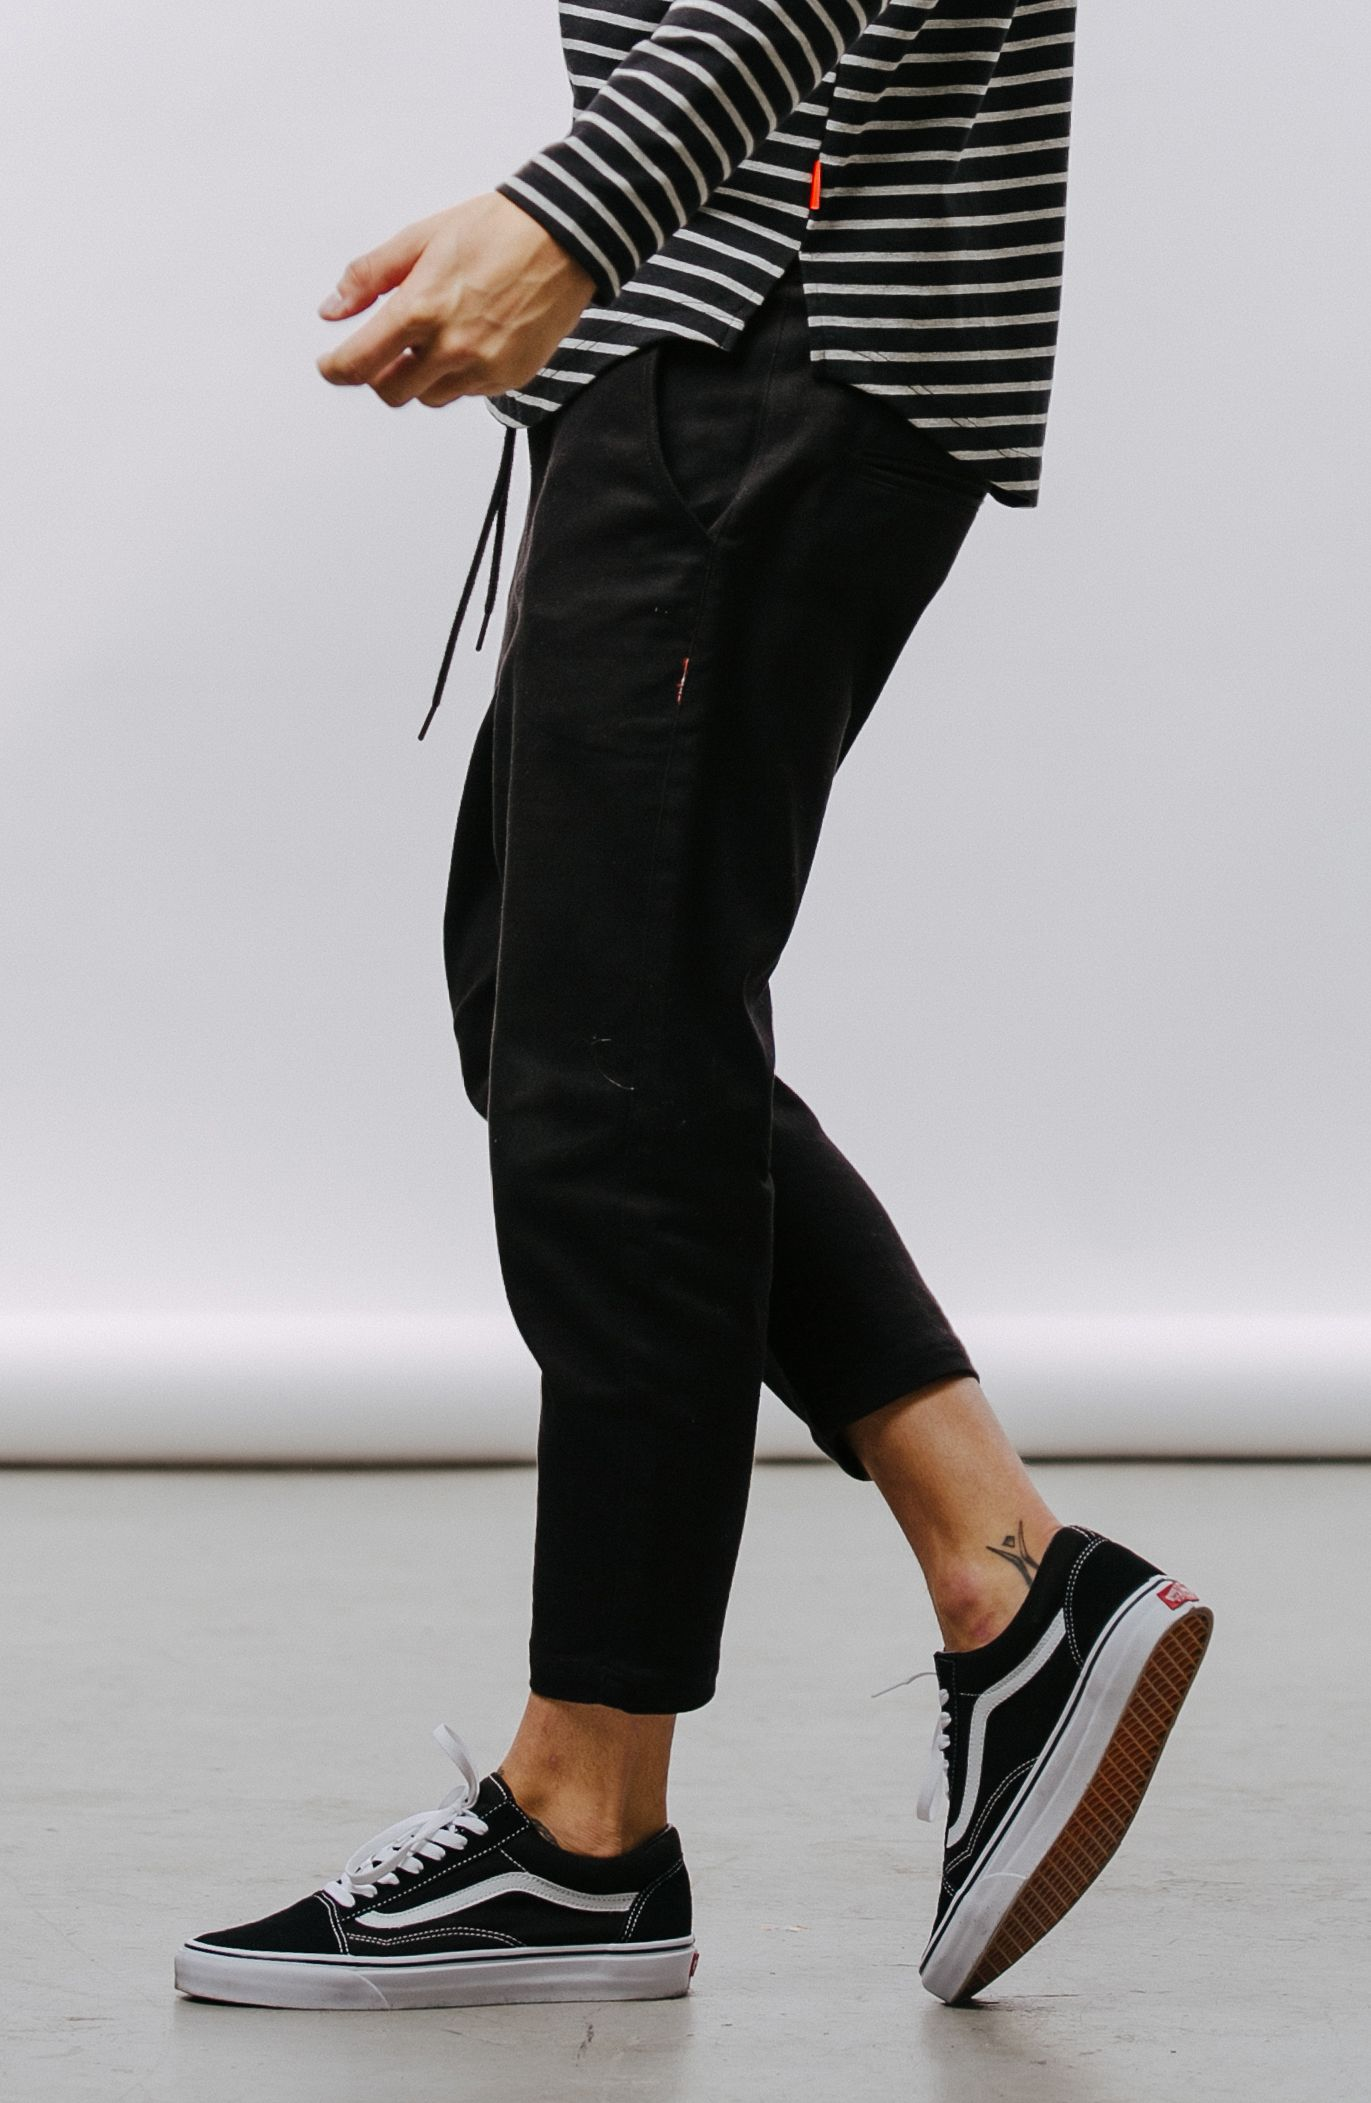 20 Outfits with Vans for Sneakers Lovers Outfit & Fashion